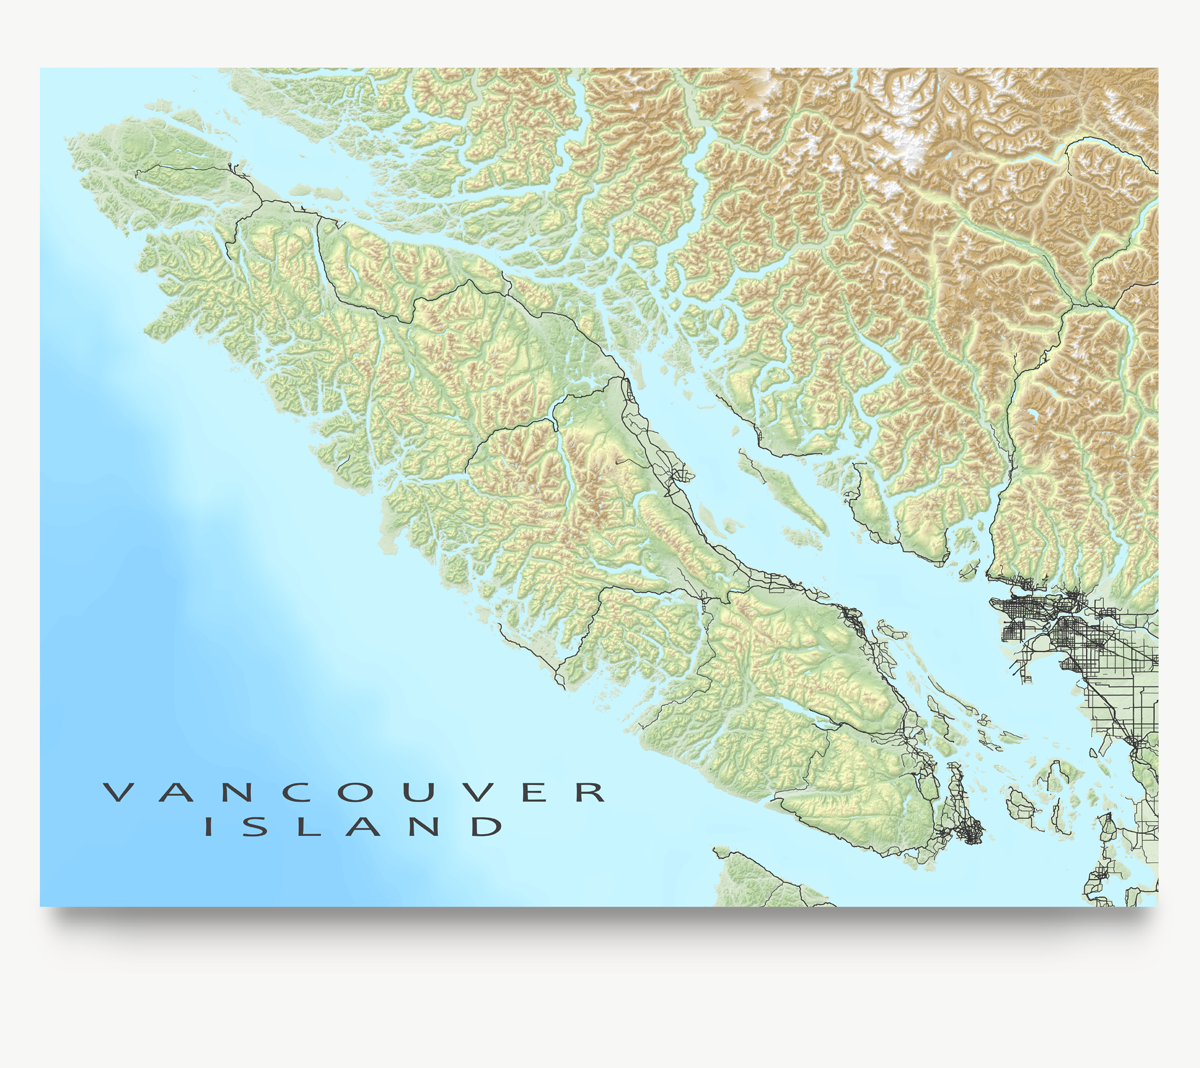 Vancouver Island Canada Map Art Print With Roads Water Bodies And